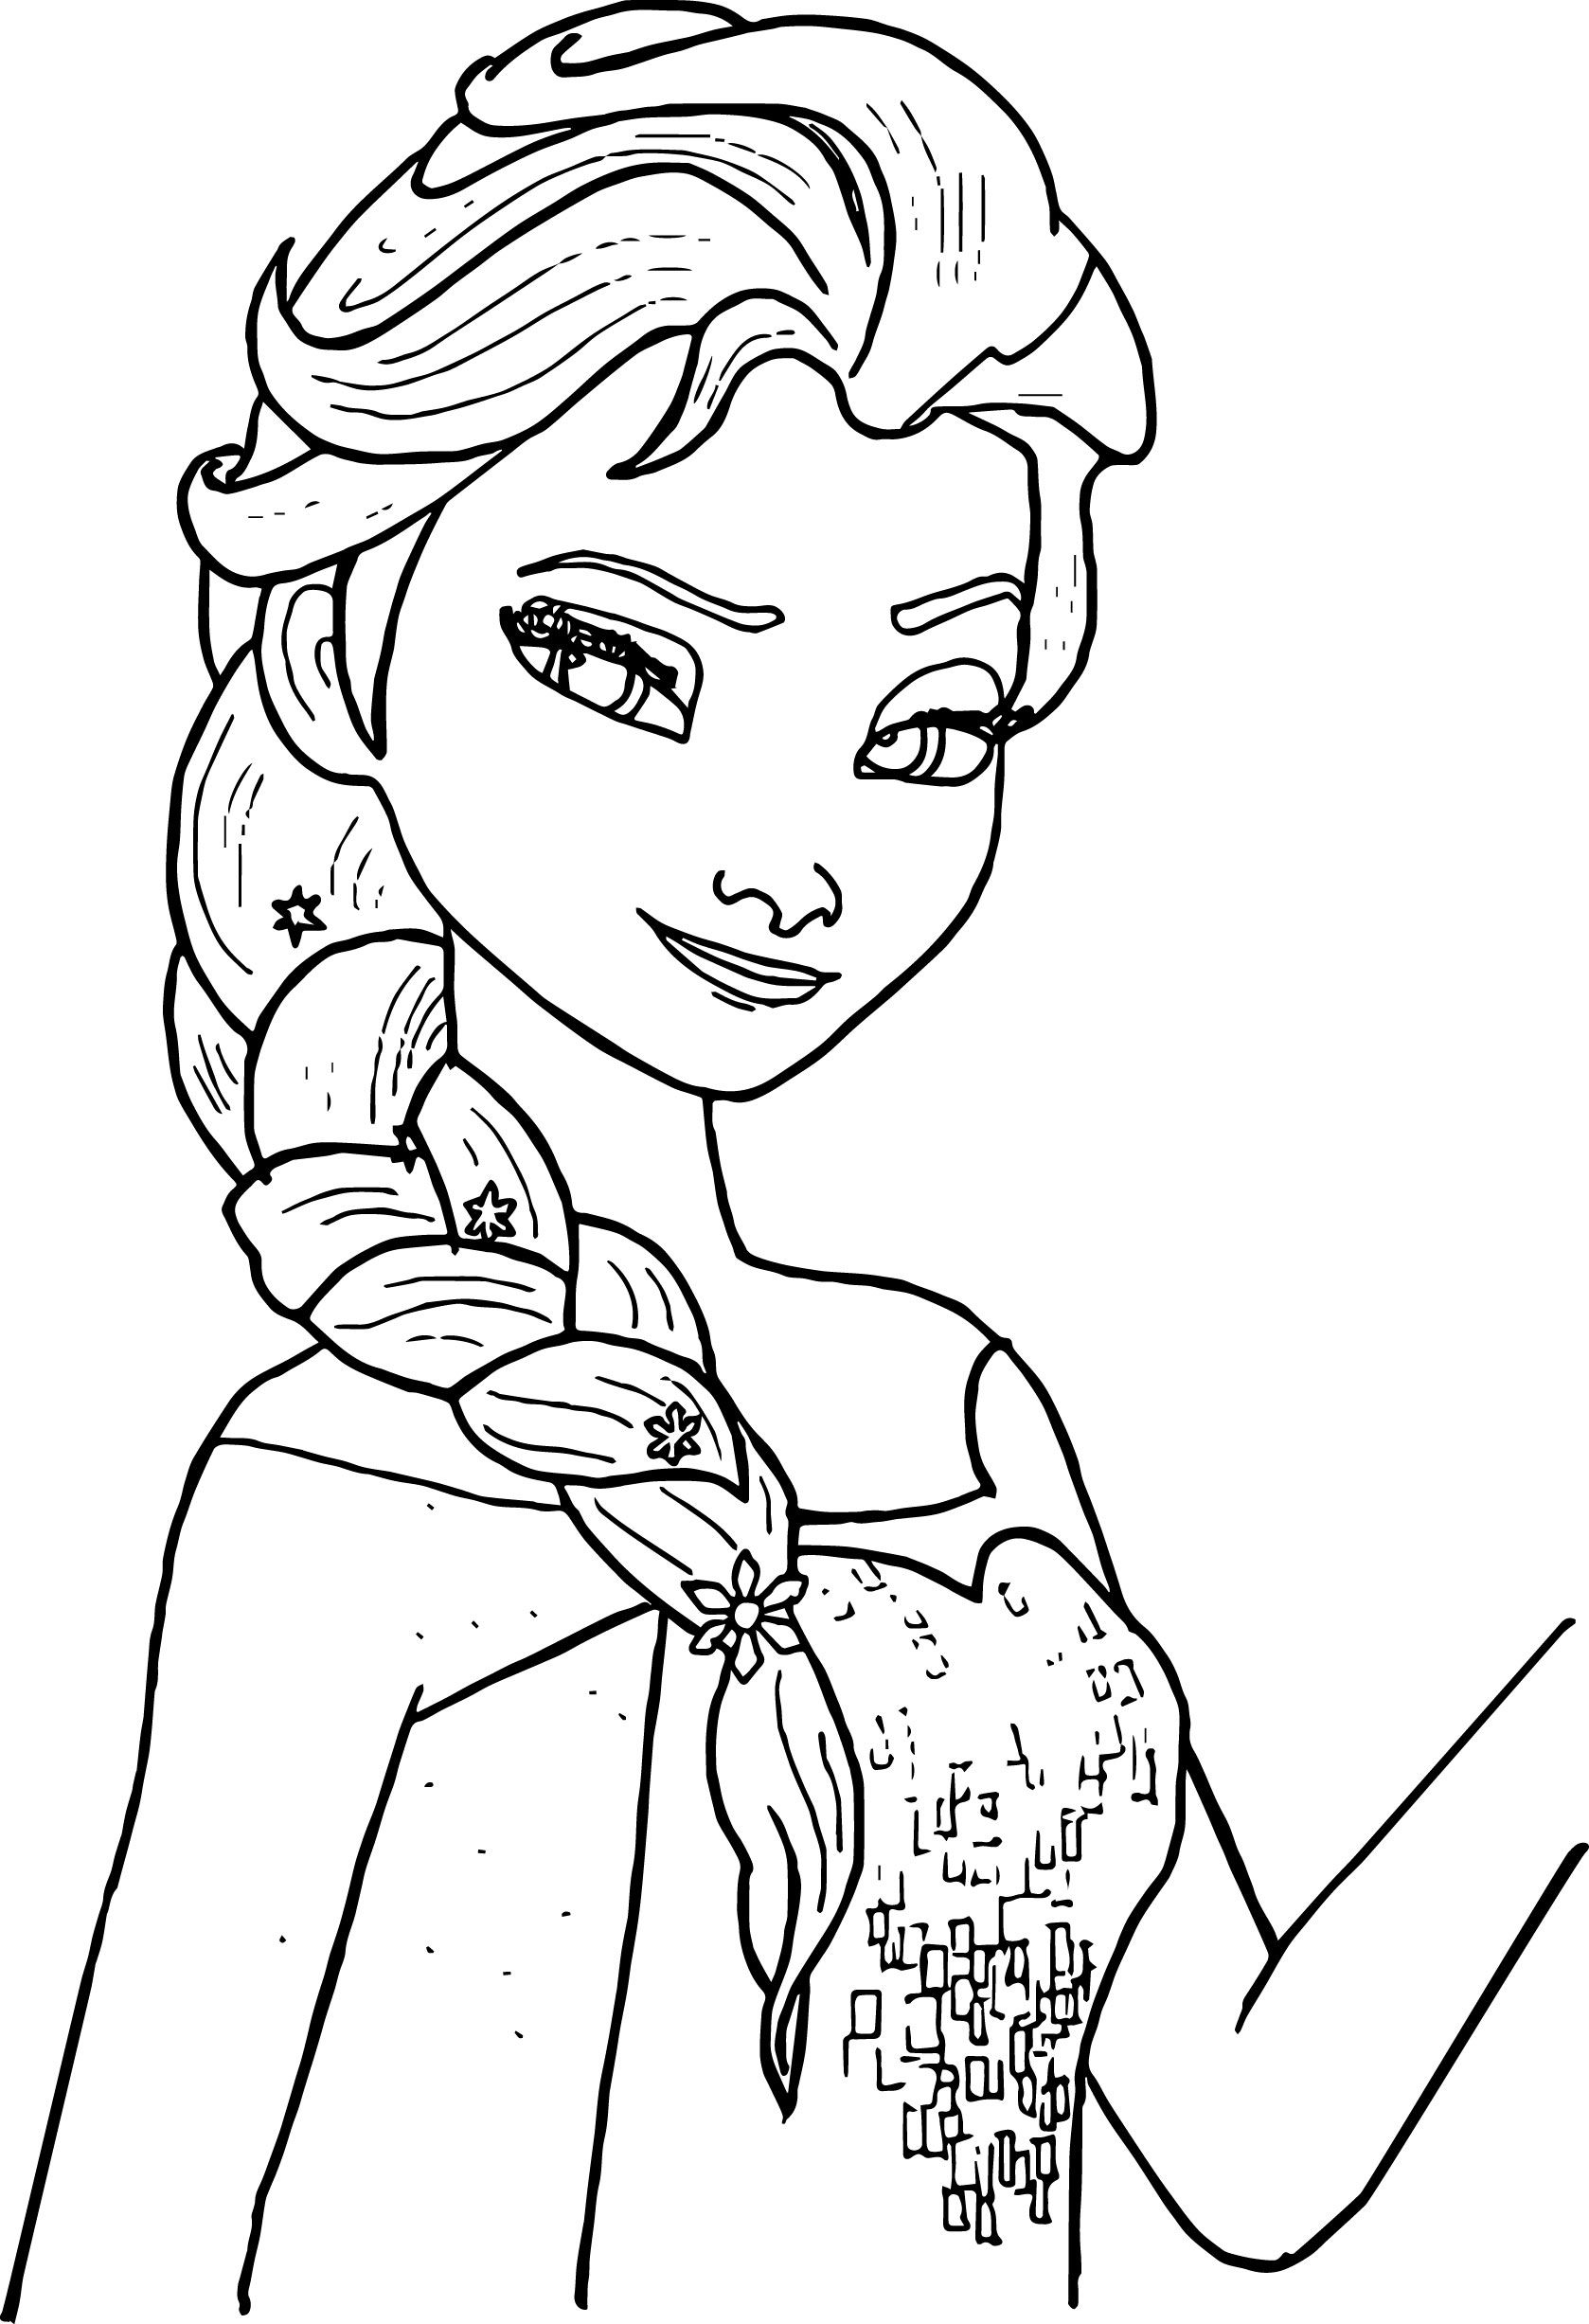 Elsa Black And White Coloring Pages - Coloring pages allow kids to